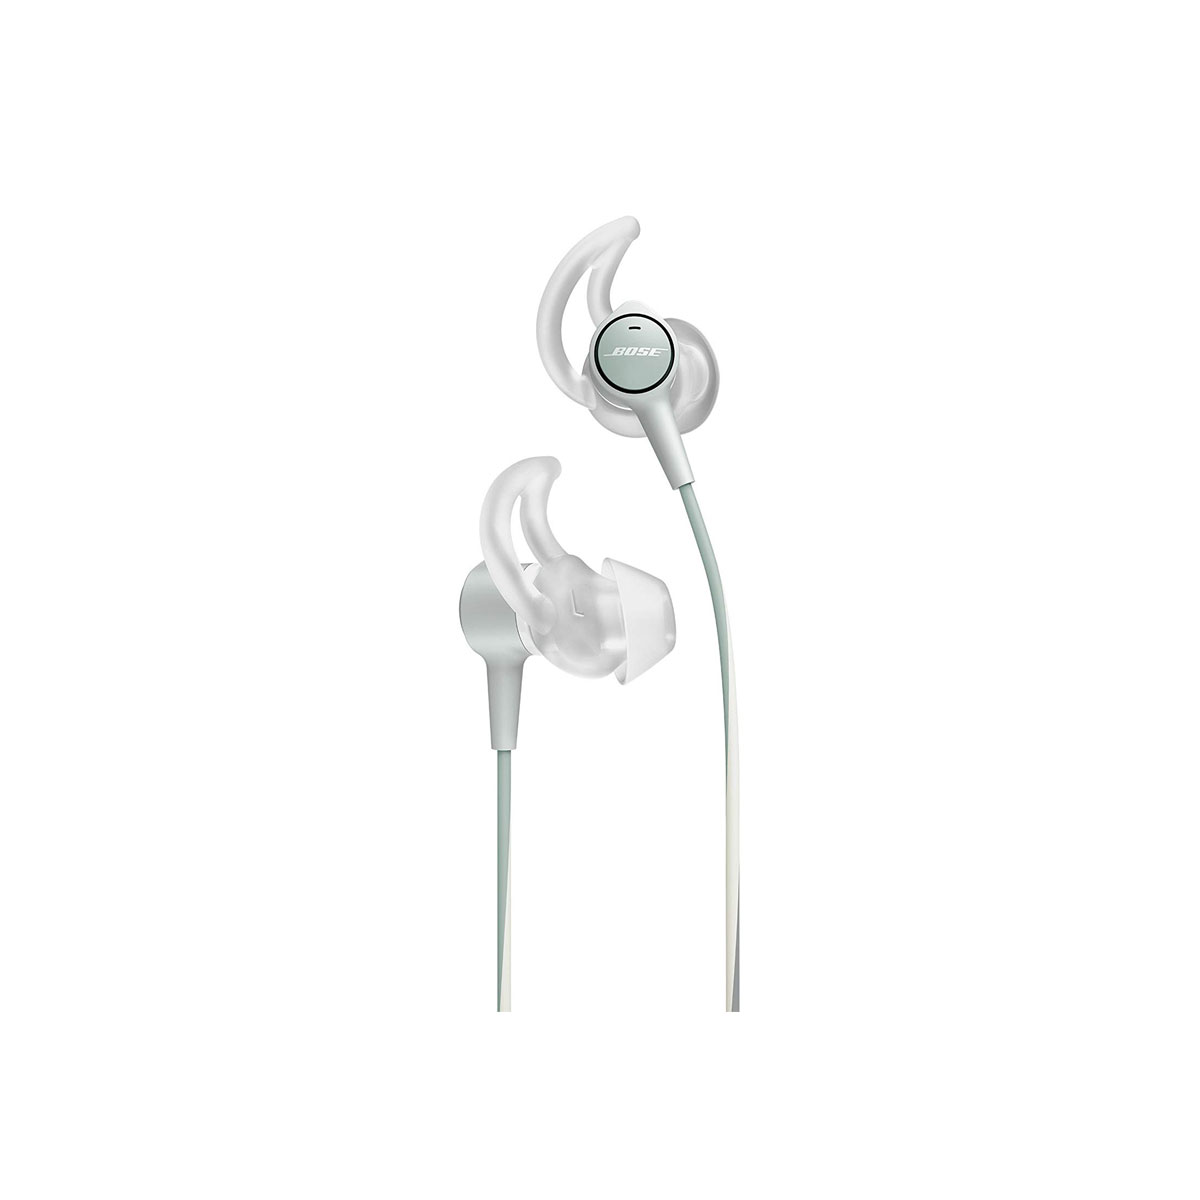 BOSE - SOUNDTRUE ULTRA IN EAR HEADPHONES - FROST